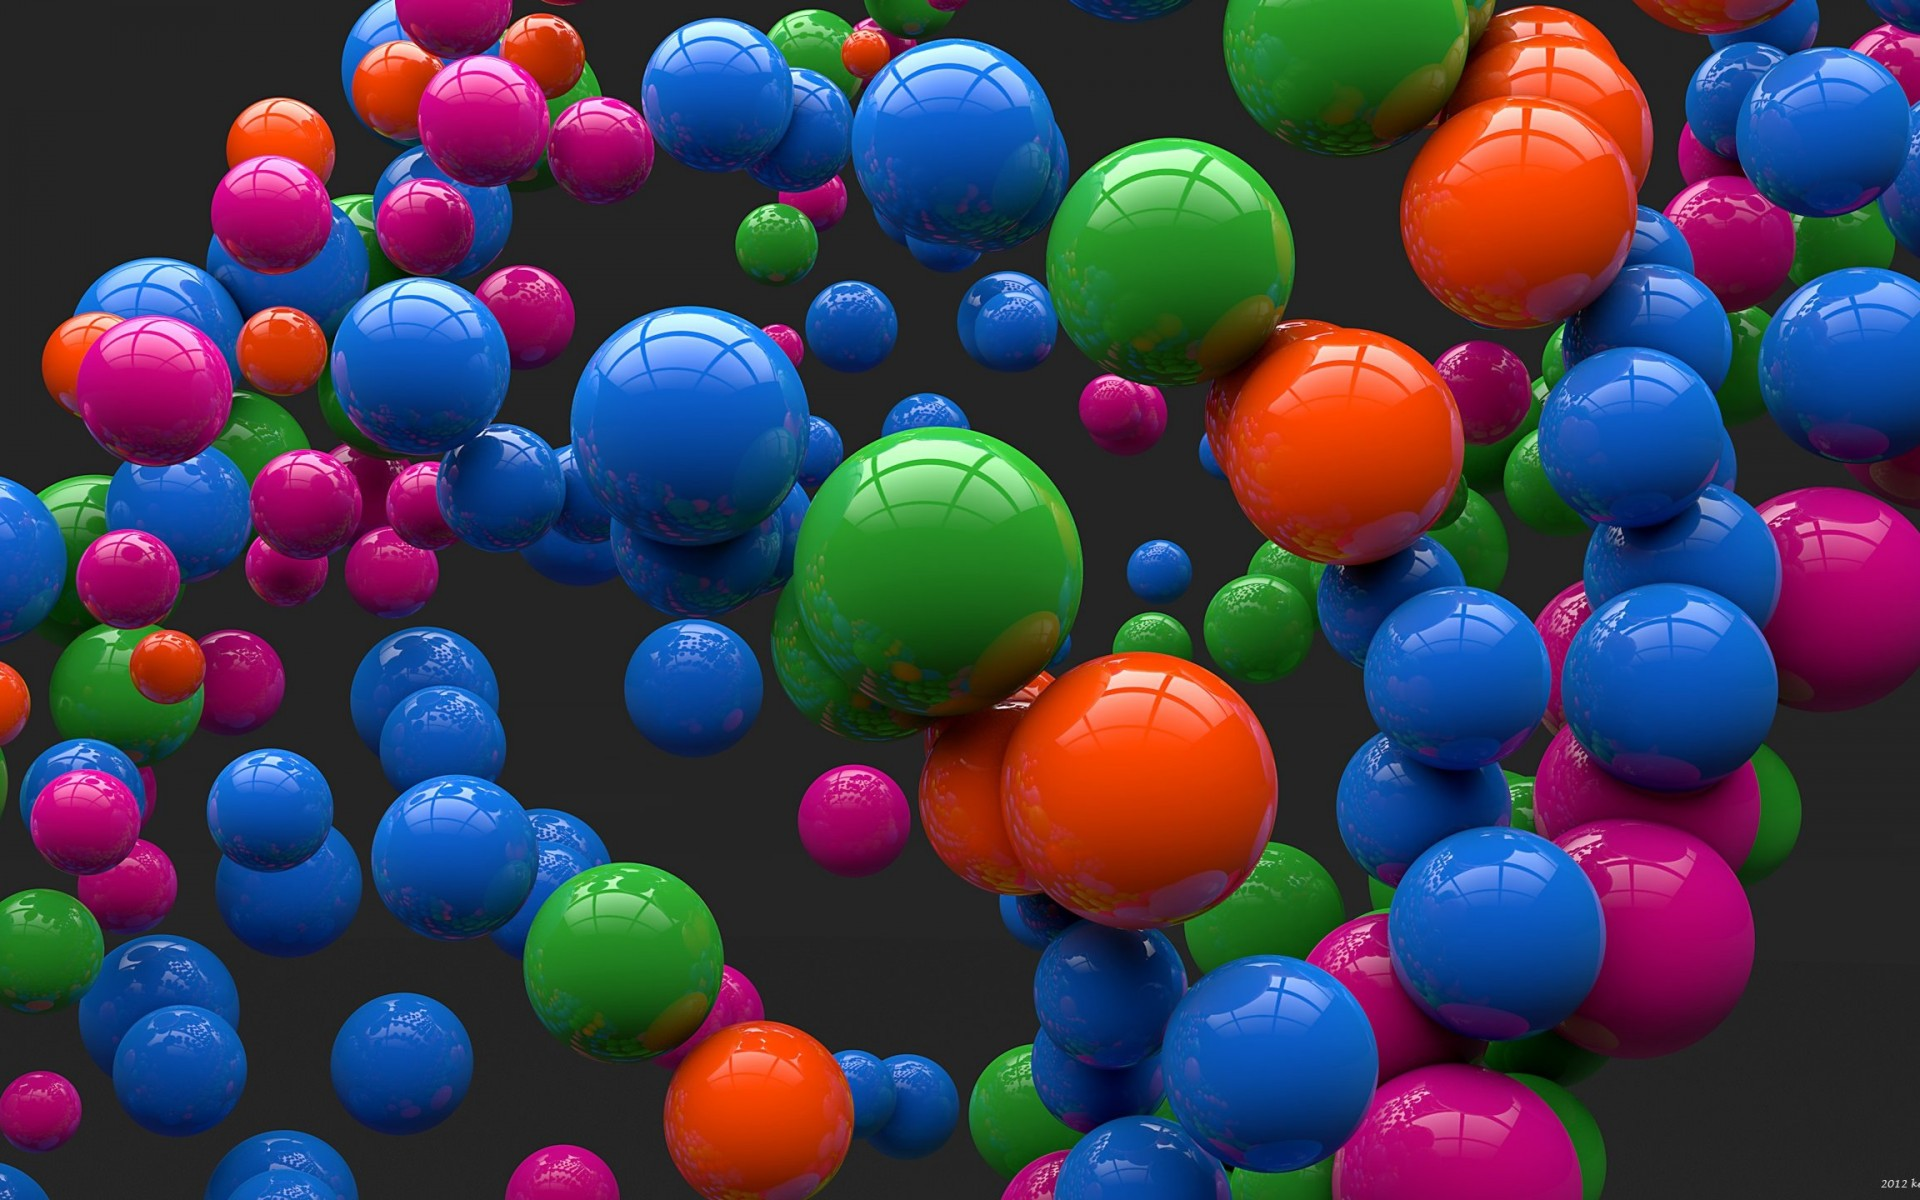 Colorful Balls Wallpaper for Desktop 1920x1200